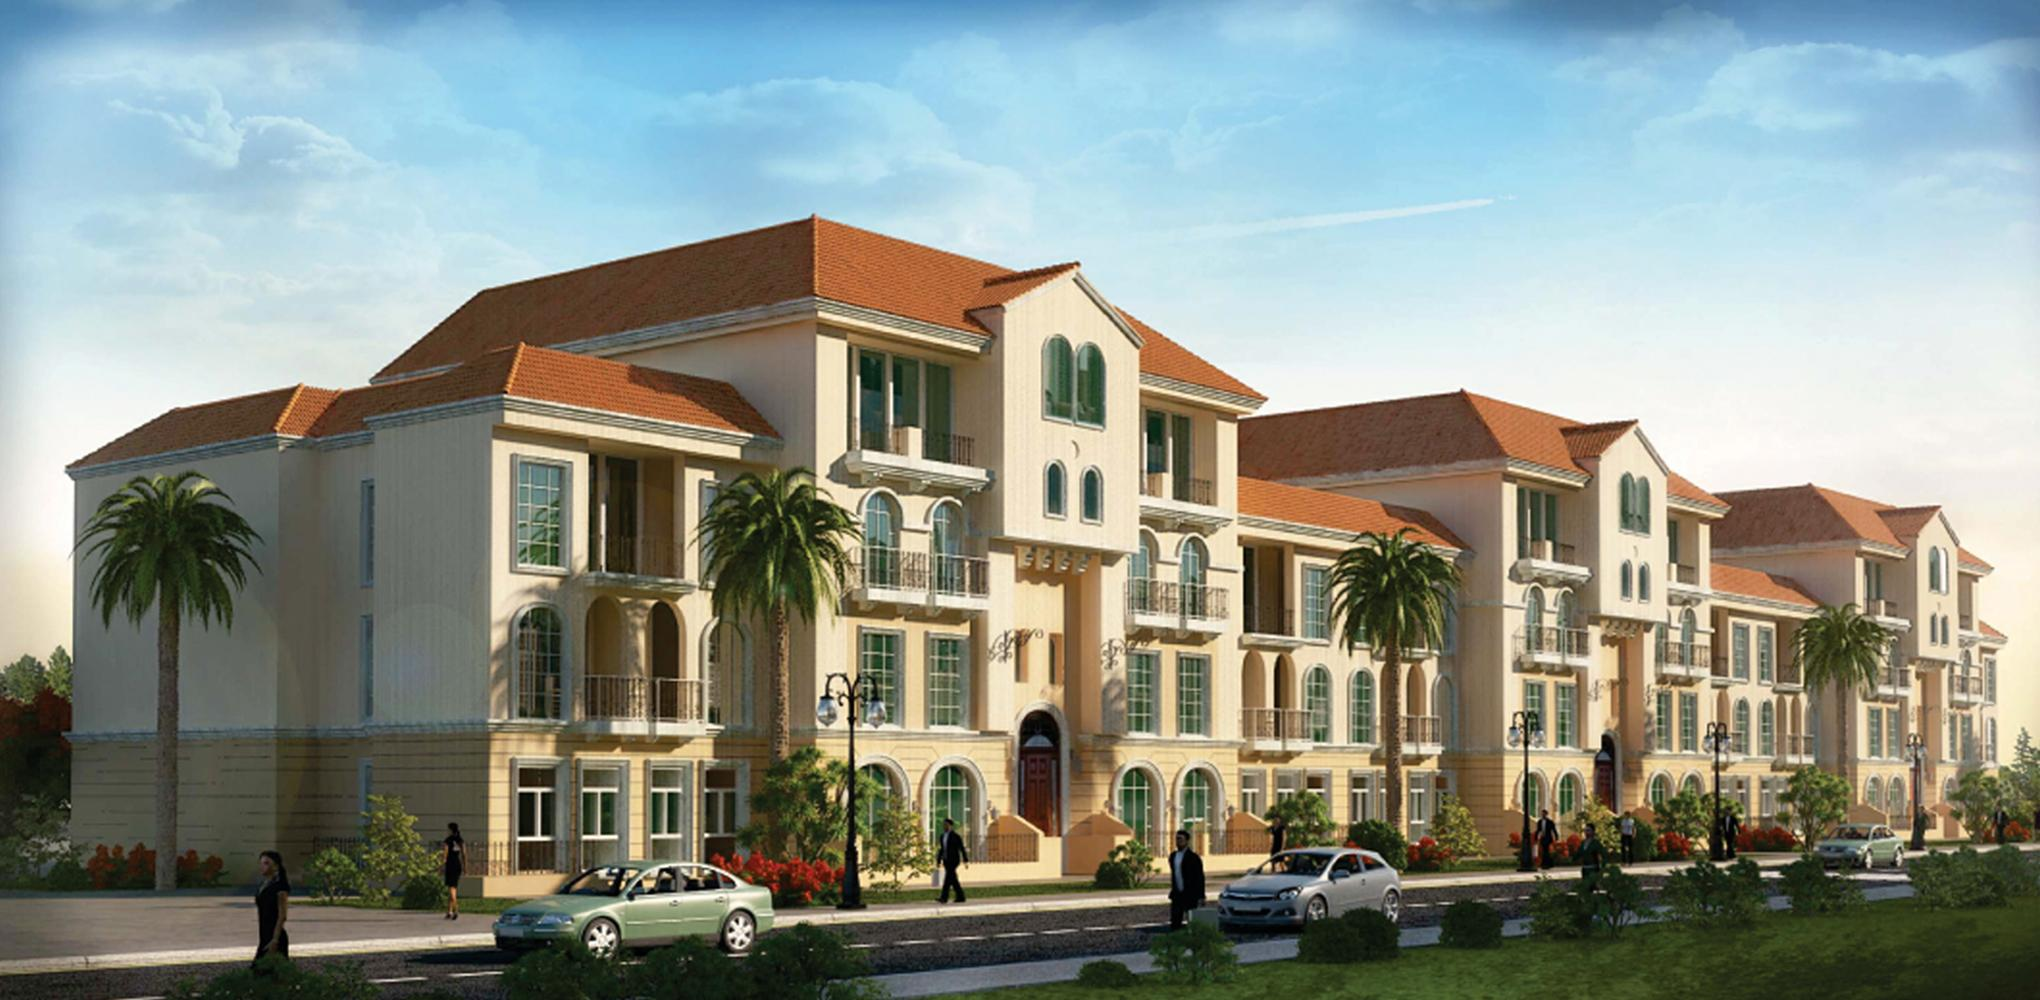 AMSC is awarded a Commercial Villas complex in Abu Dhabi for a total contract value of 61,200,000.00 AED